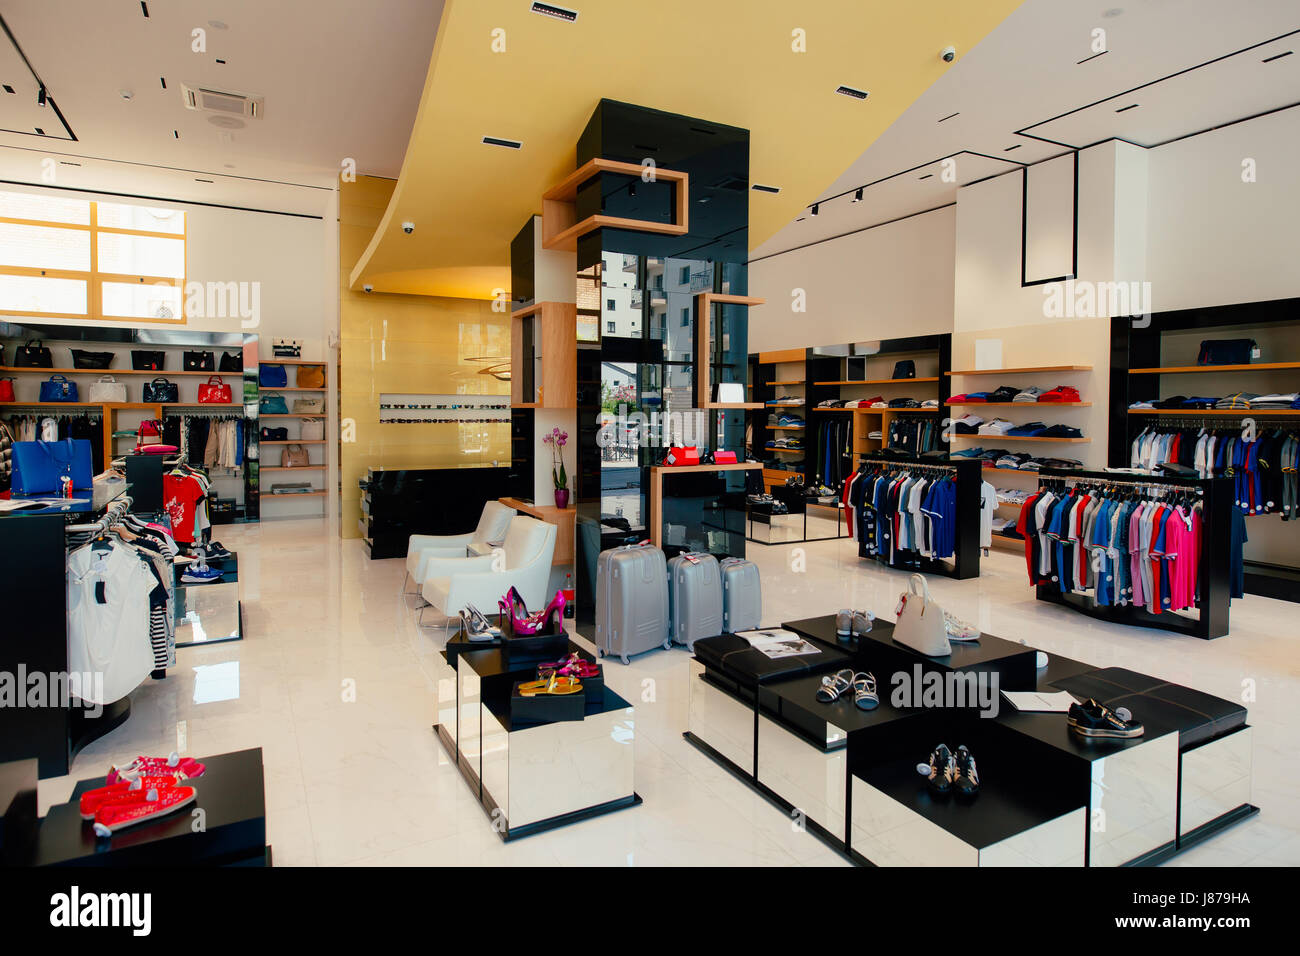 fd6916e7bb22 Interior of a clothing store. Clothing for men and women on the store  shelves. Shopping hall end clothing store.